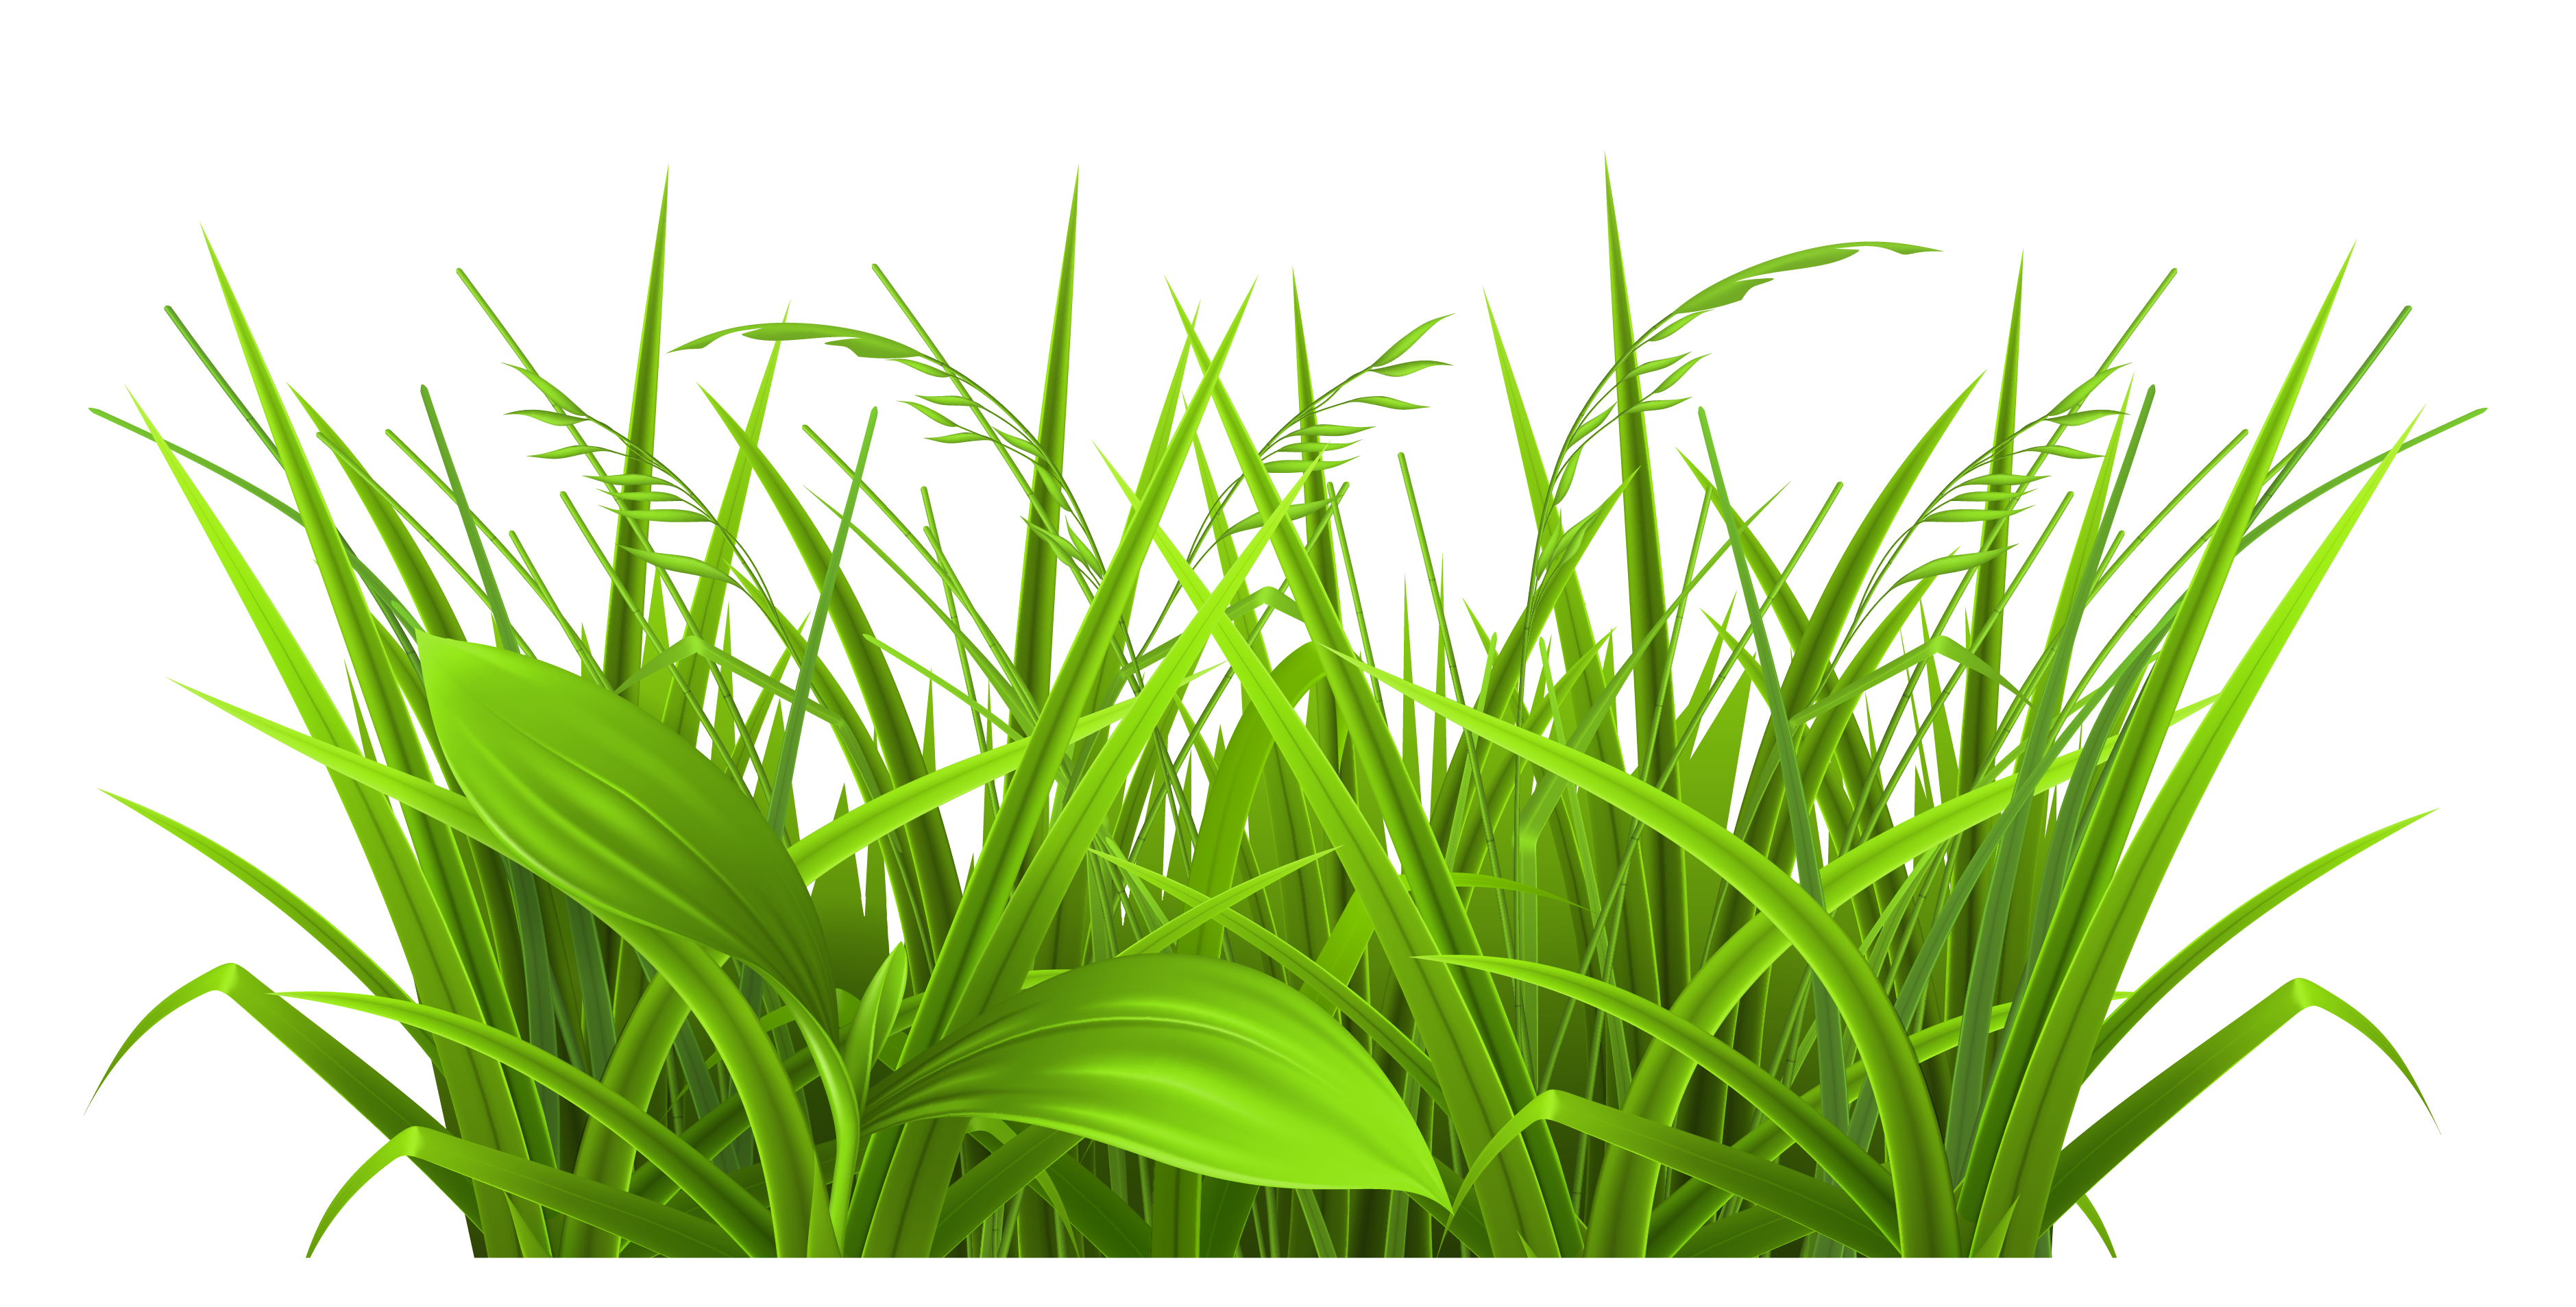 Grass  black and white grass clip art images